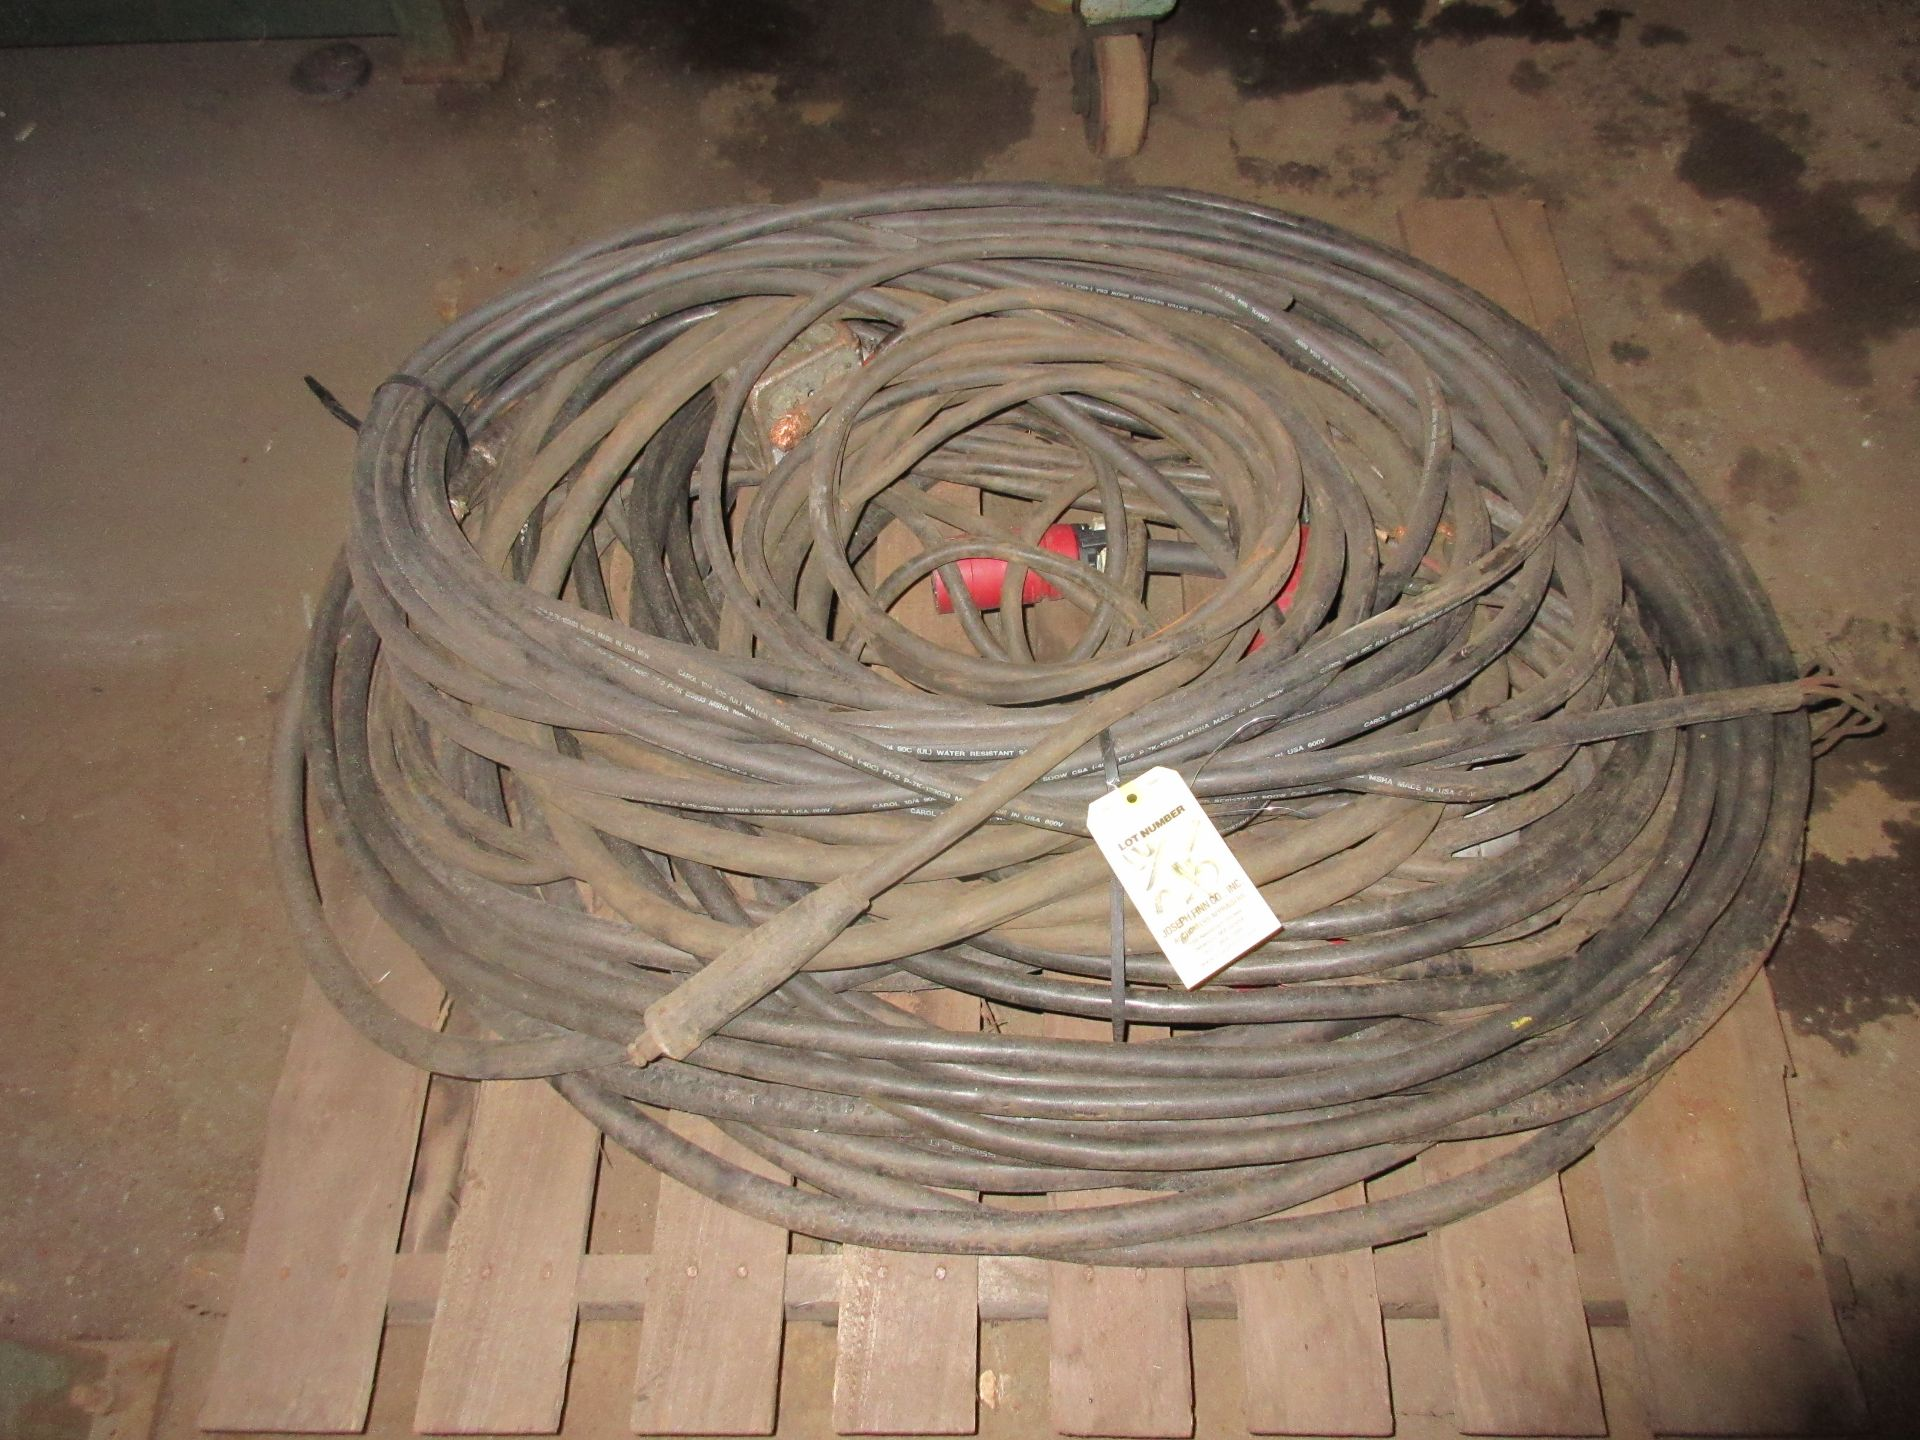 LOT Asst. Welding Cable & Torches on (2) Pallets - Image 2 of 2